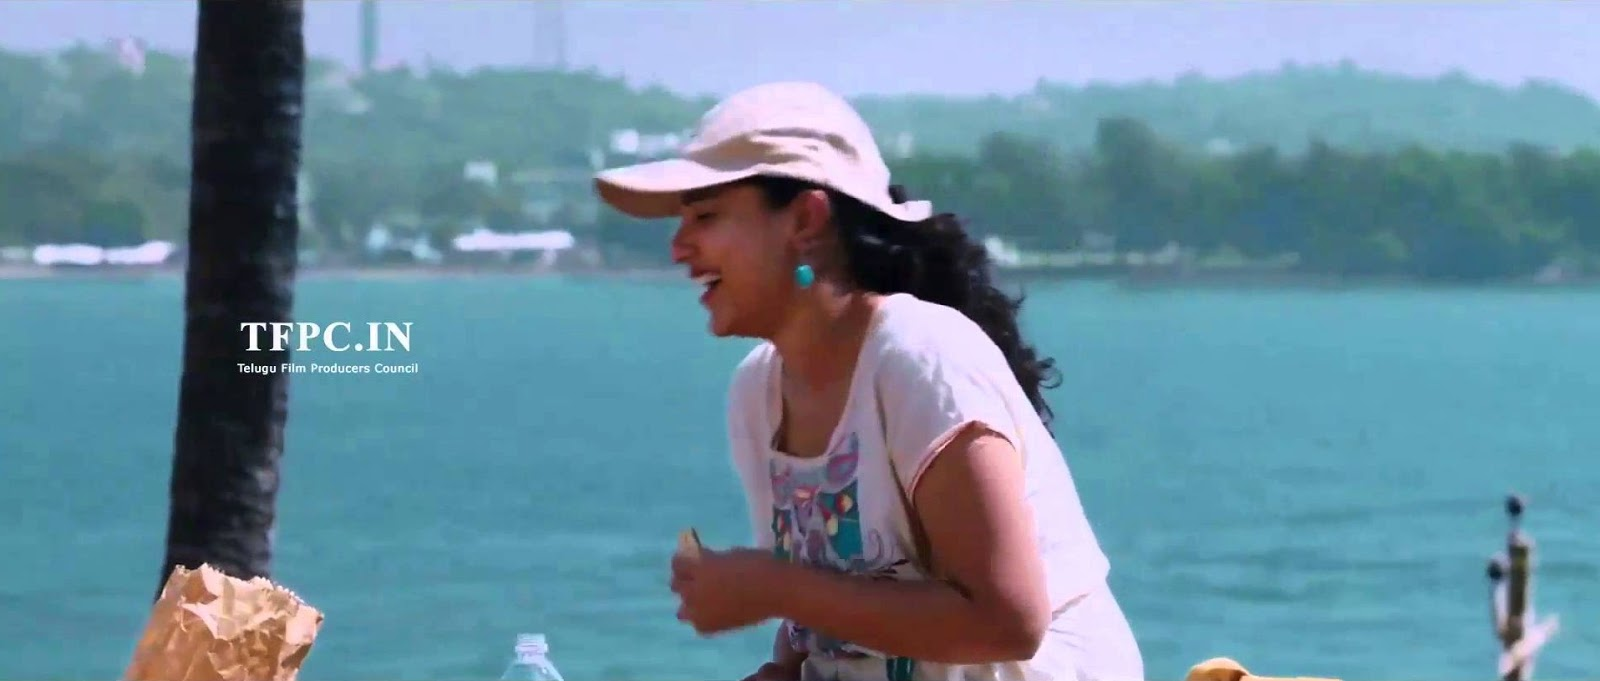 Rajadhi Raja Movie Manasa Manasa Song _ Sharwanand, Nitya Menon _ TFPC